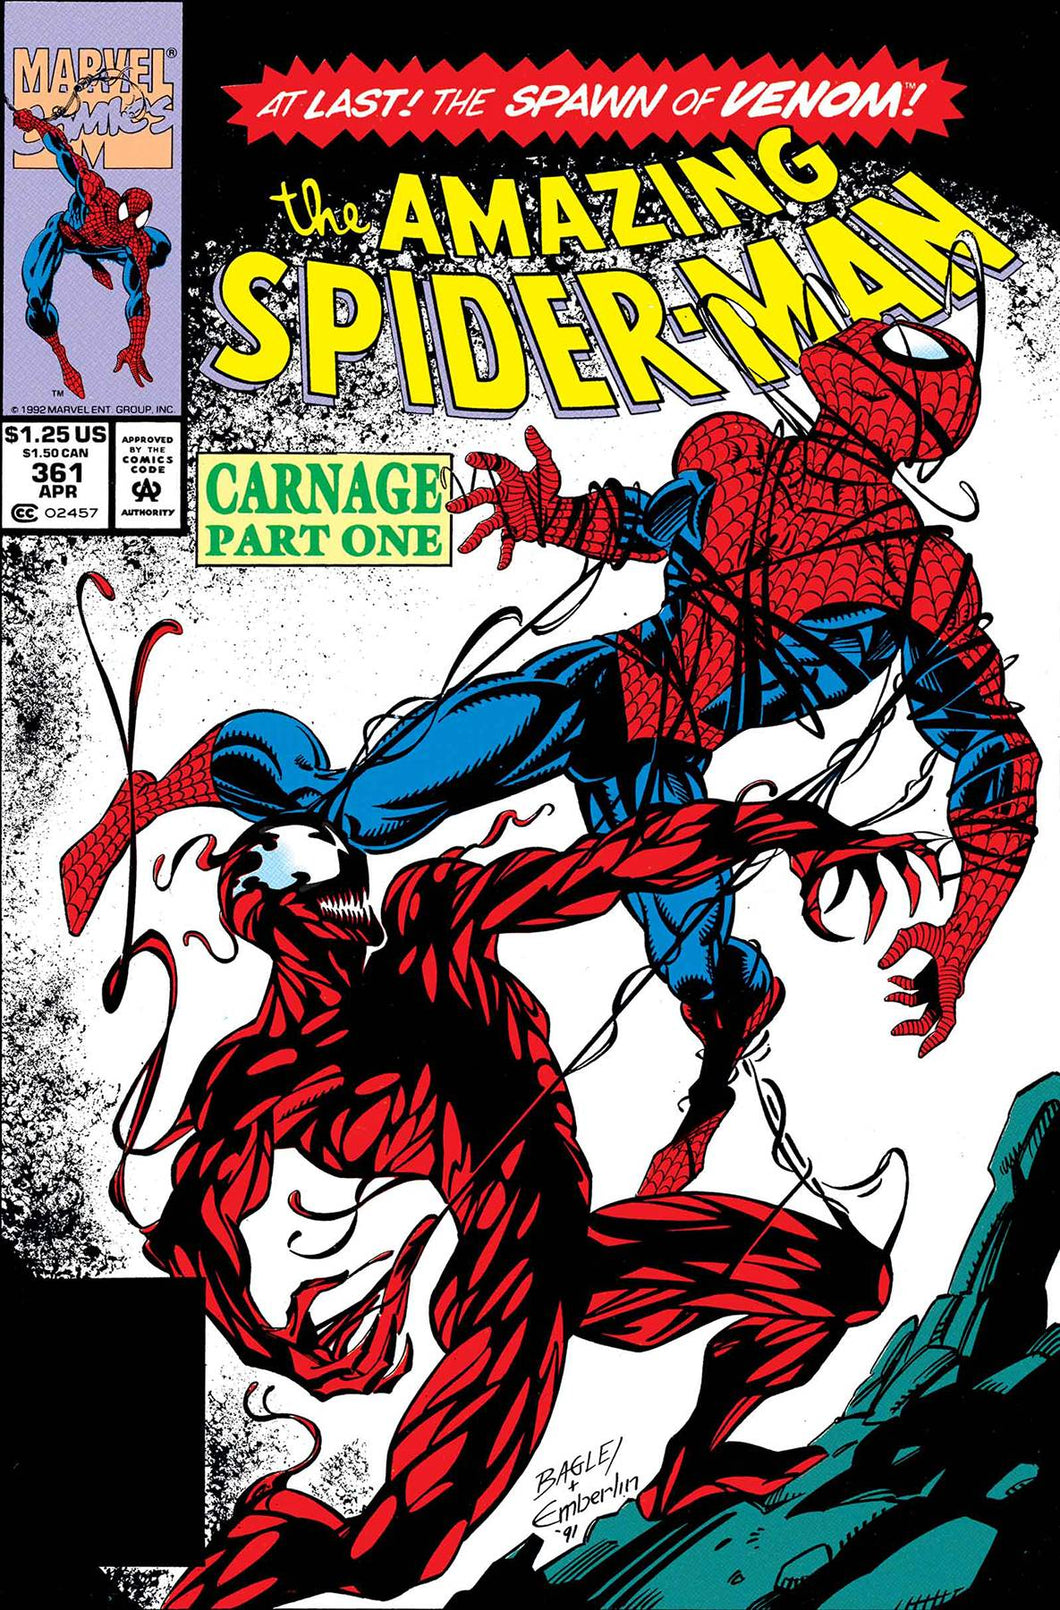 TRUE BELIEVERS ABSOLUTE CARNAGE CARNAGE #1 AMAZING SPIDER-MAN #361 REPRINT 07/10/19 FOC 06/17/19